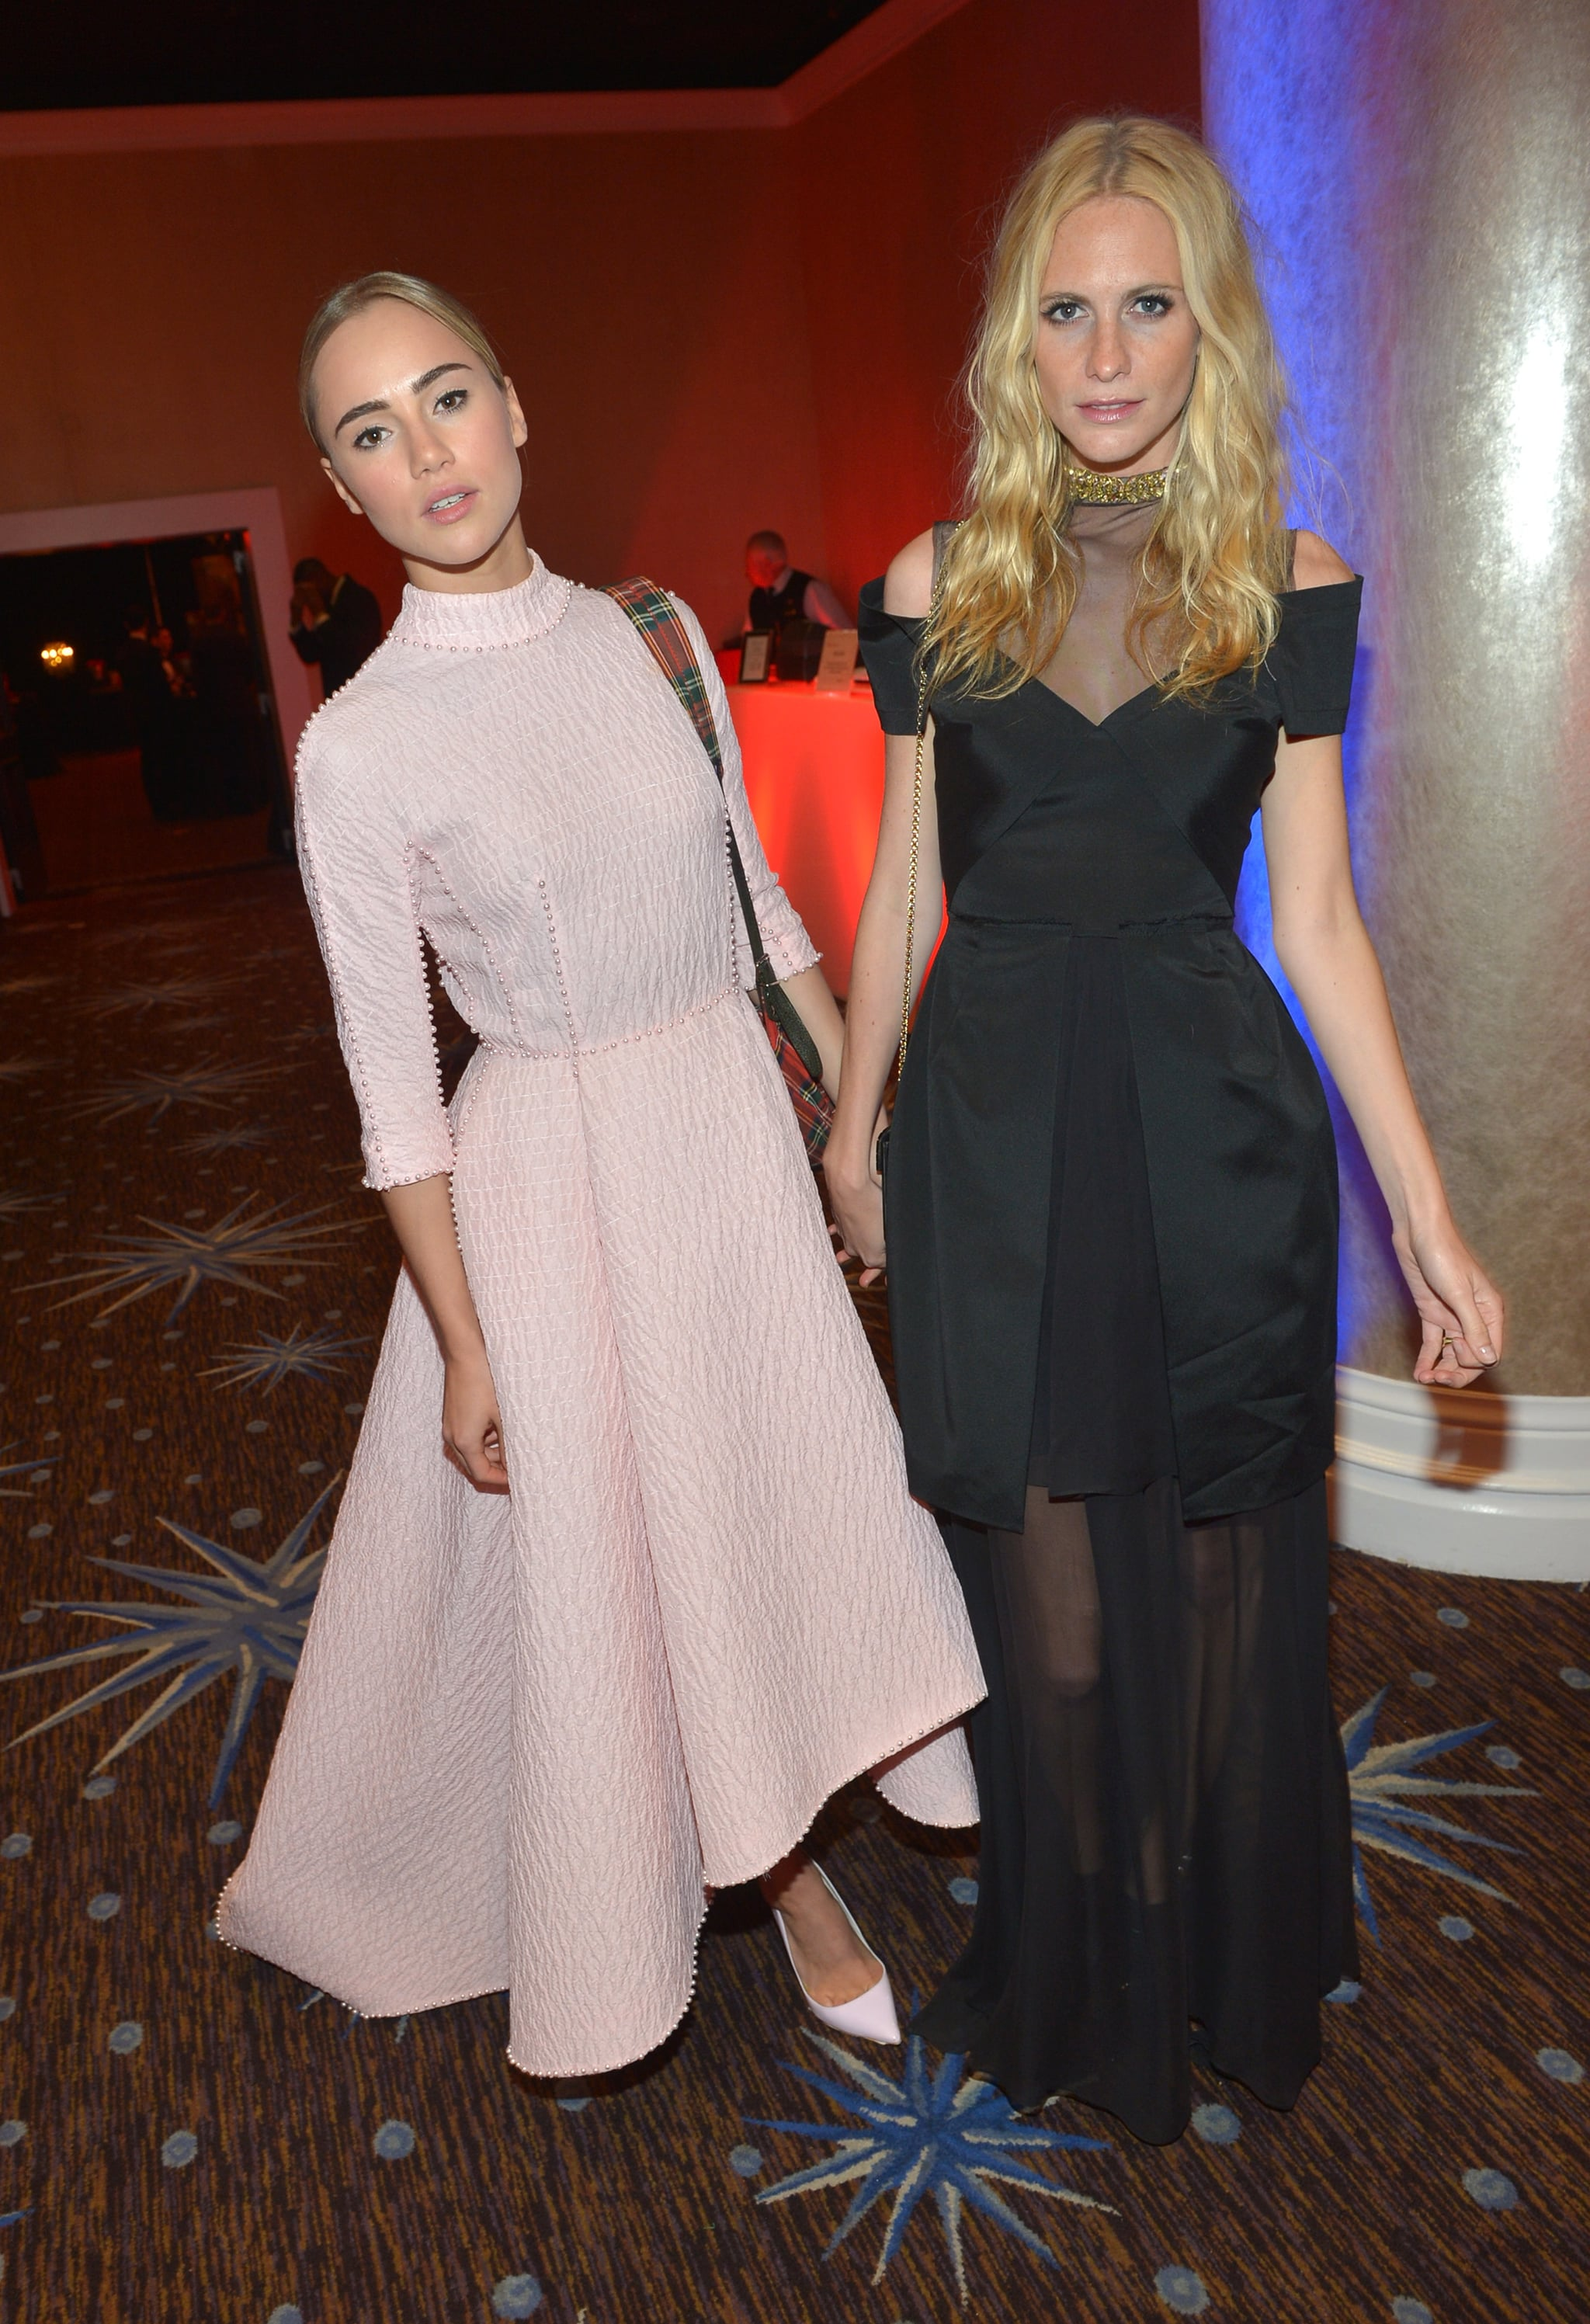 Suki Waterhouse and Poppy Delevingne posed together inside the BAFTA LA Jaguar Britannia Awards.